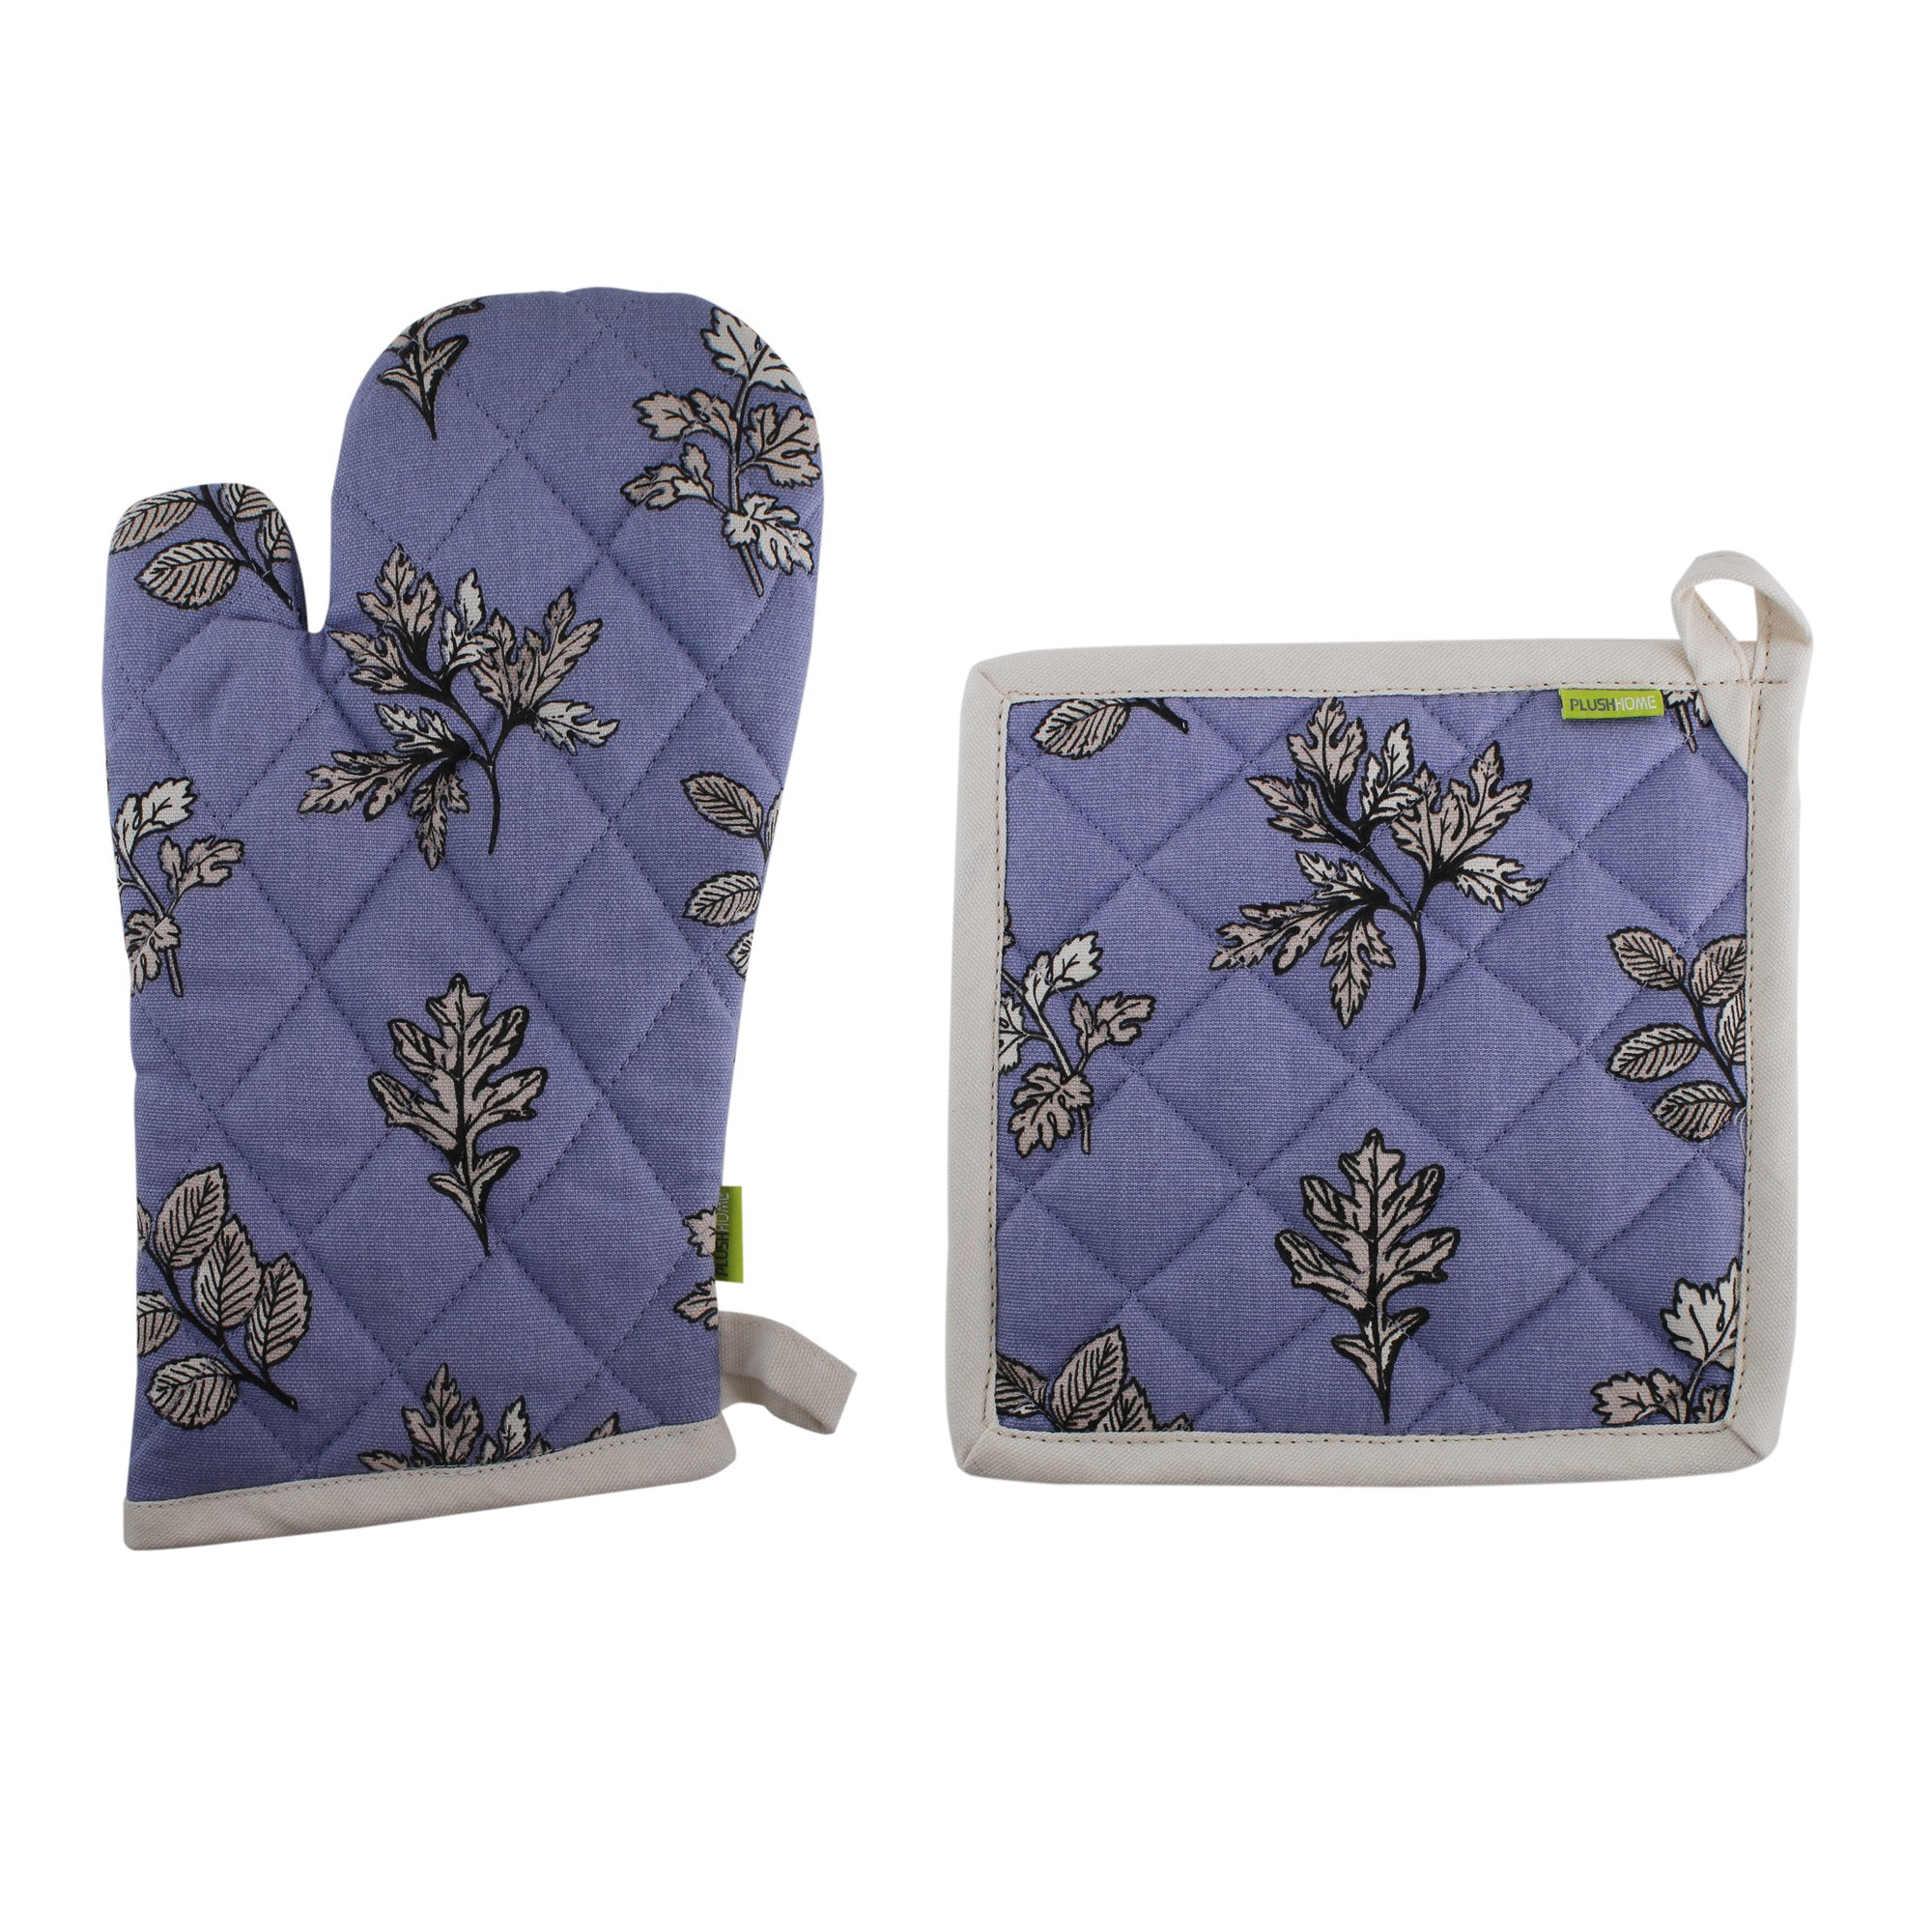 Pot Holder And Oven Mitt Set, 100% Cotton, Set of 1 Oven mitten of Size 7''X12 Inch & 1 Potholder of Size 8''X8 Inch, Eco - Friendly & Safe, Blue Autmun Leaves Design for Kitchen